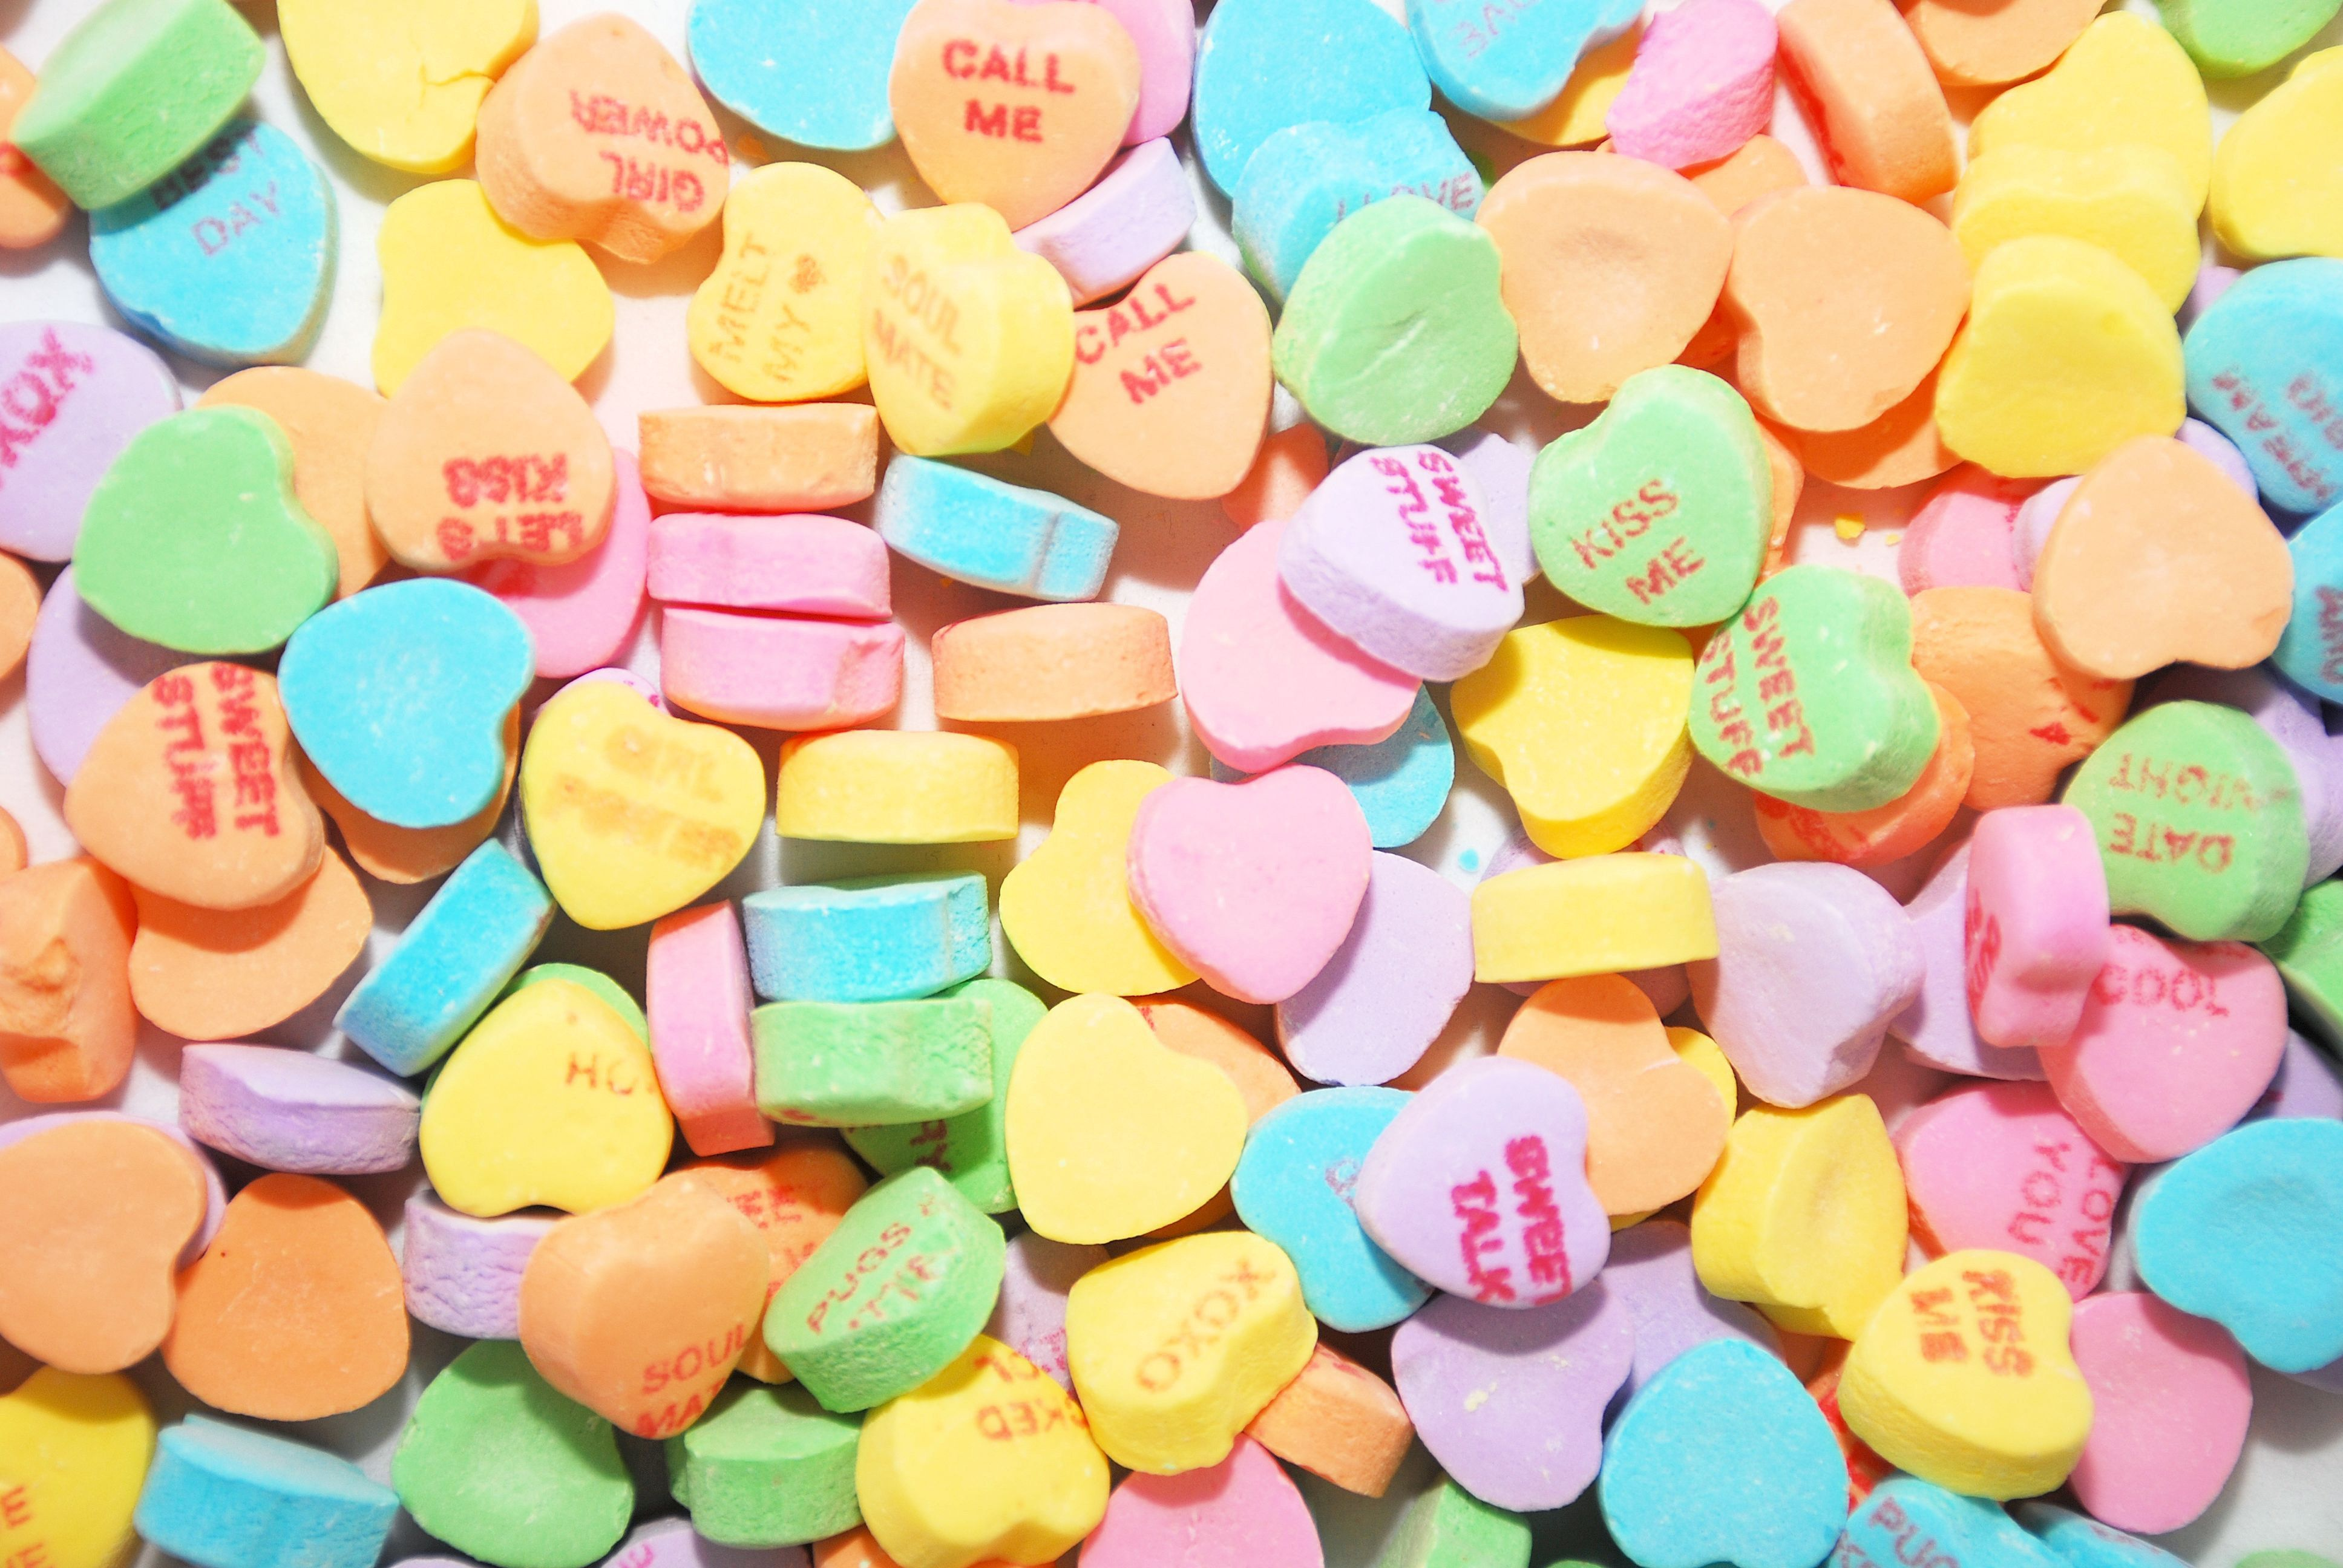 The Weird Backstory Behind Those Valentines Day Candy